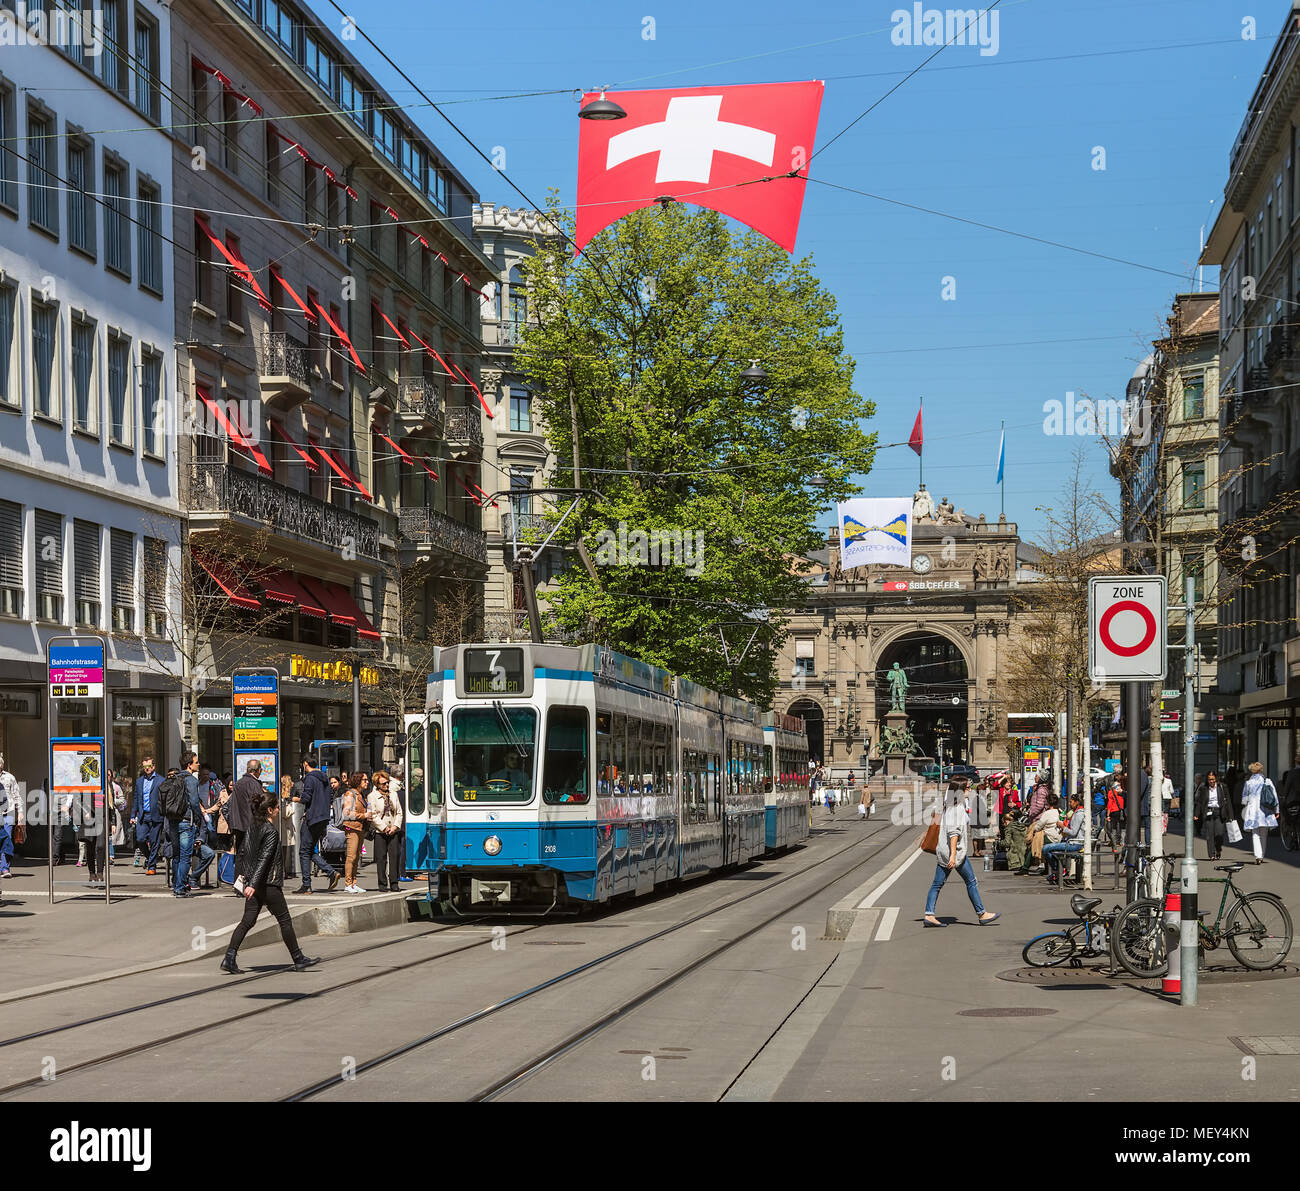 Zurich, Switzerland - 20 April, 2016: a tram on Bahnhofstrasse street. Trams make an important contribution to public transport of the city of Zurich  - Stock Image